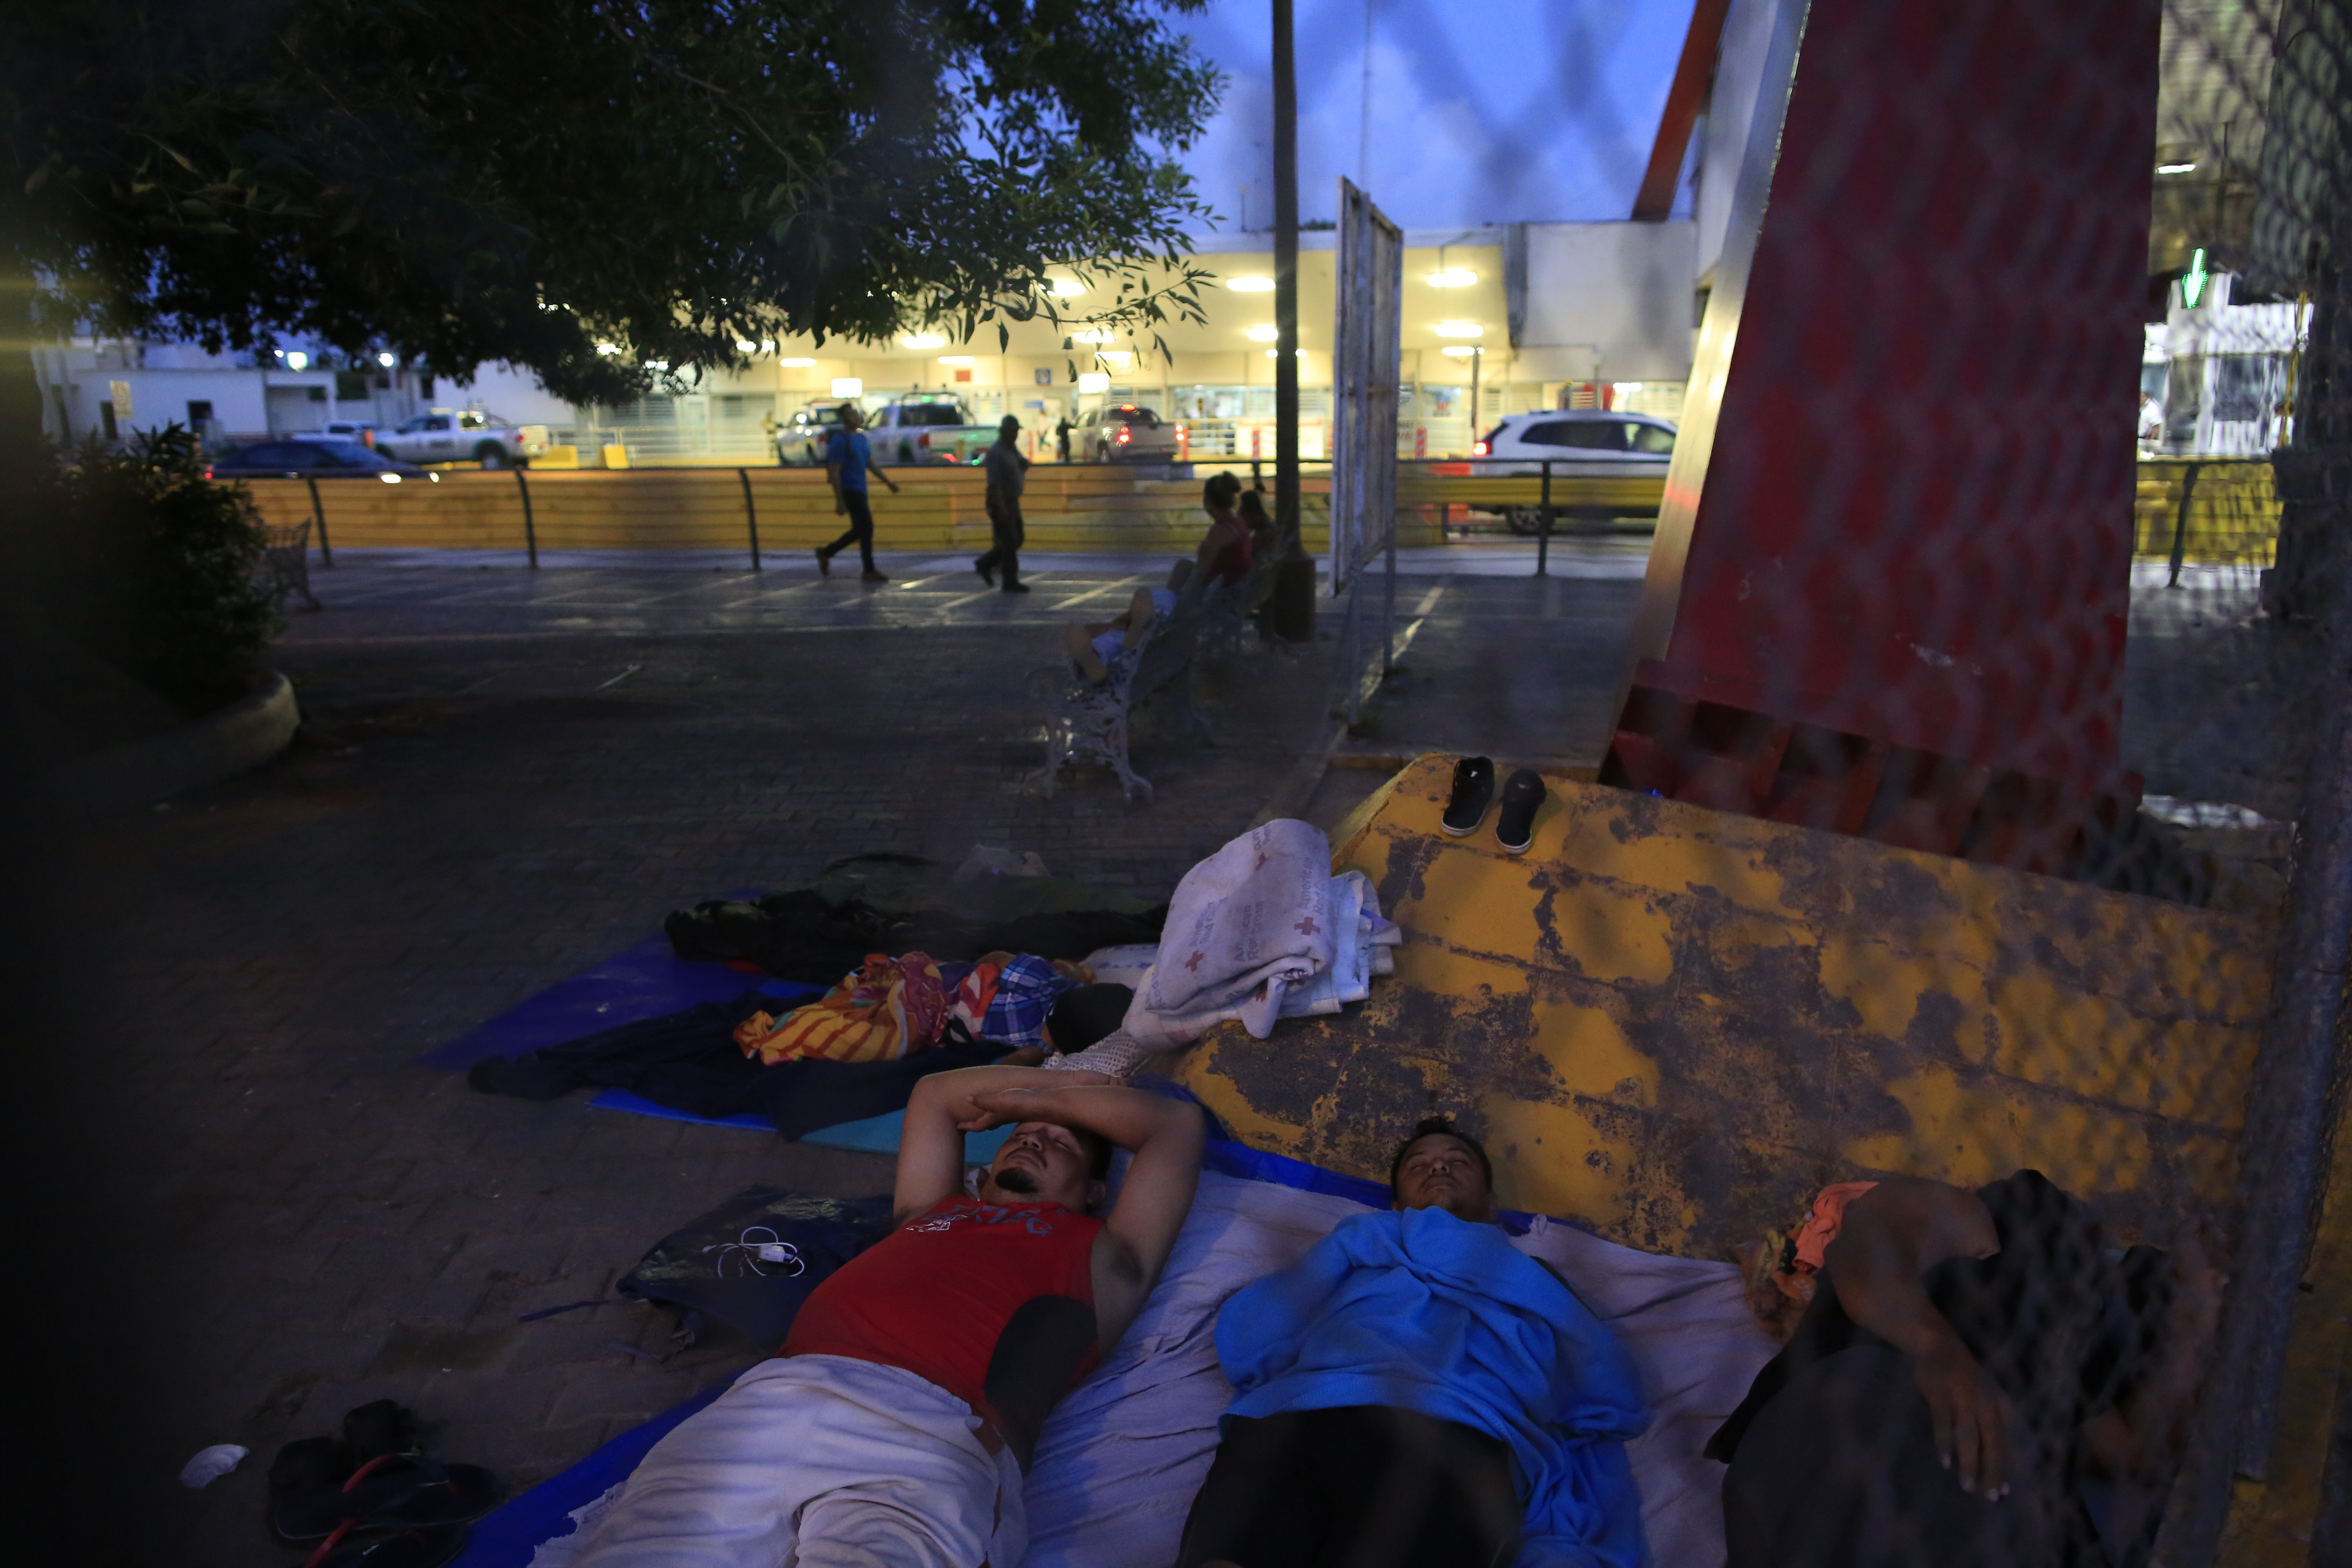 Group say conditions dire for asylum seekers stuck in Mexico